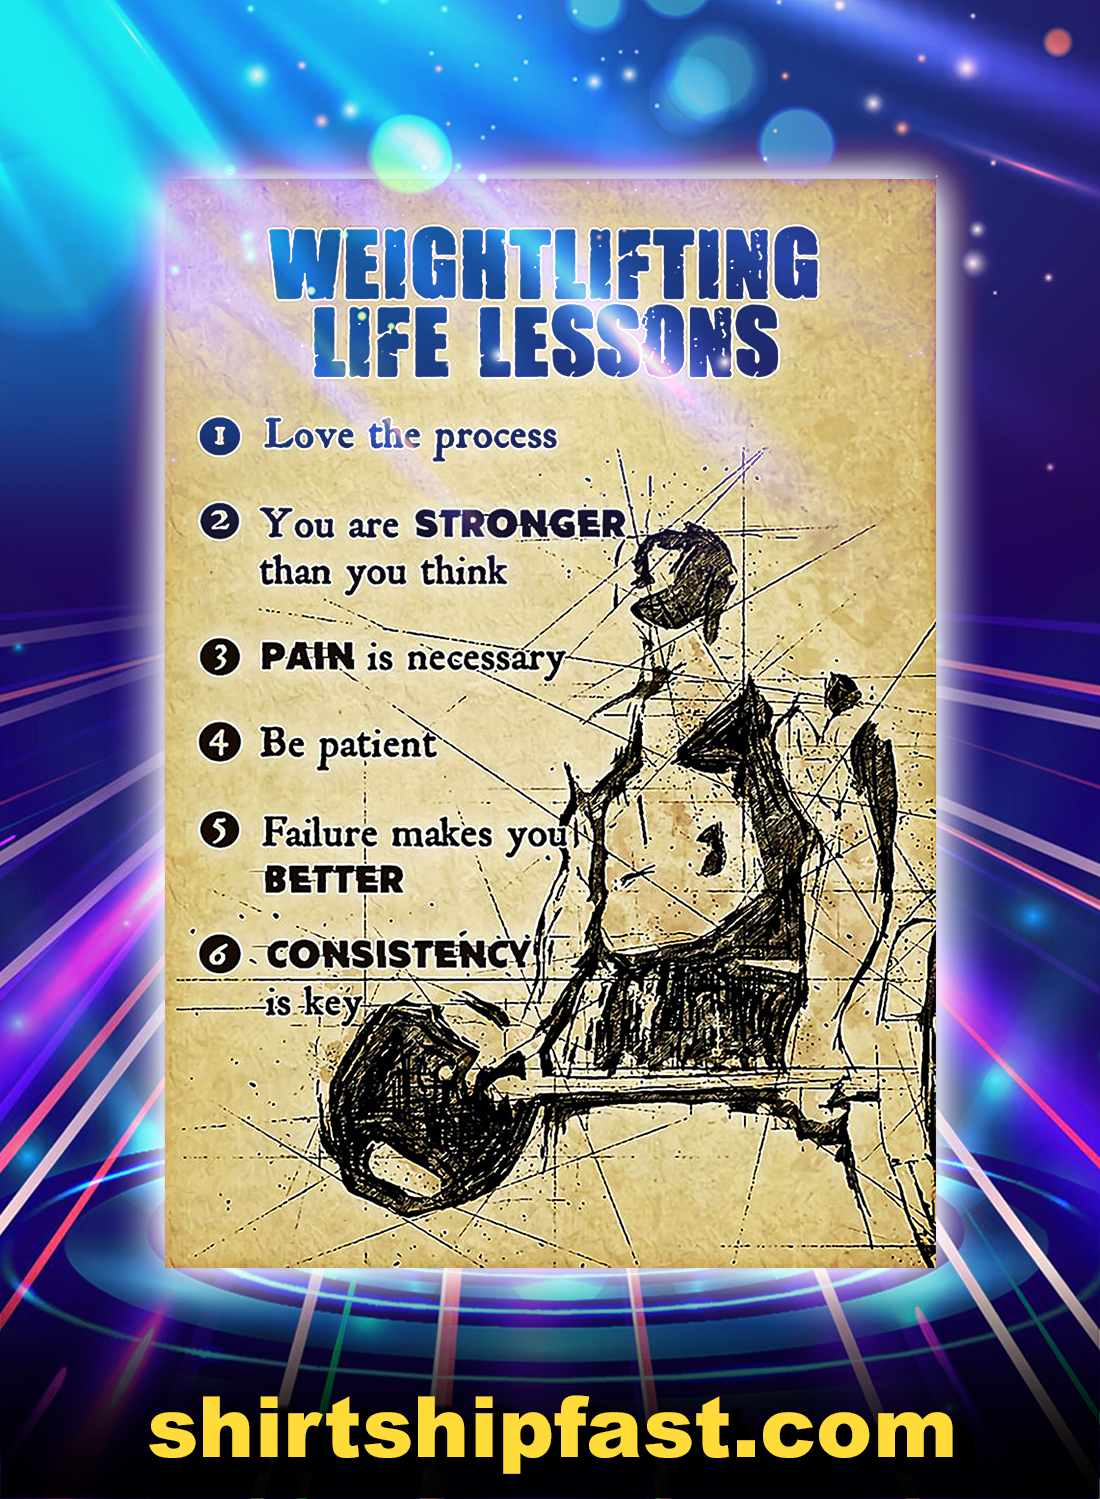 Fitness weightlifting life lessons poster - A4